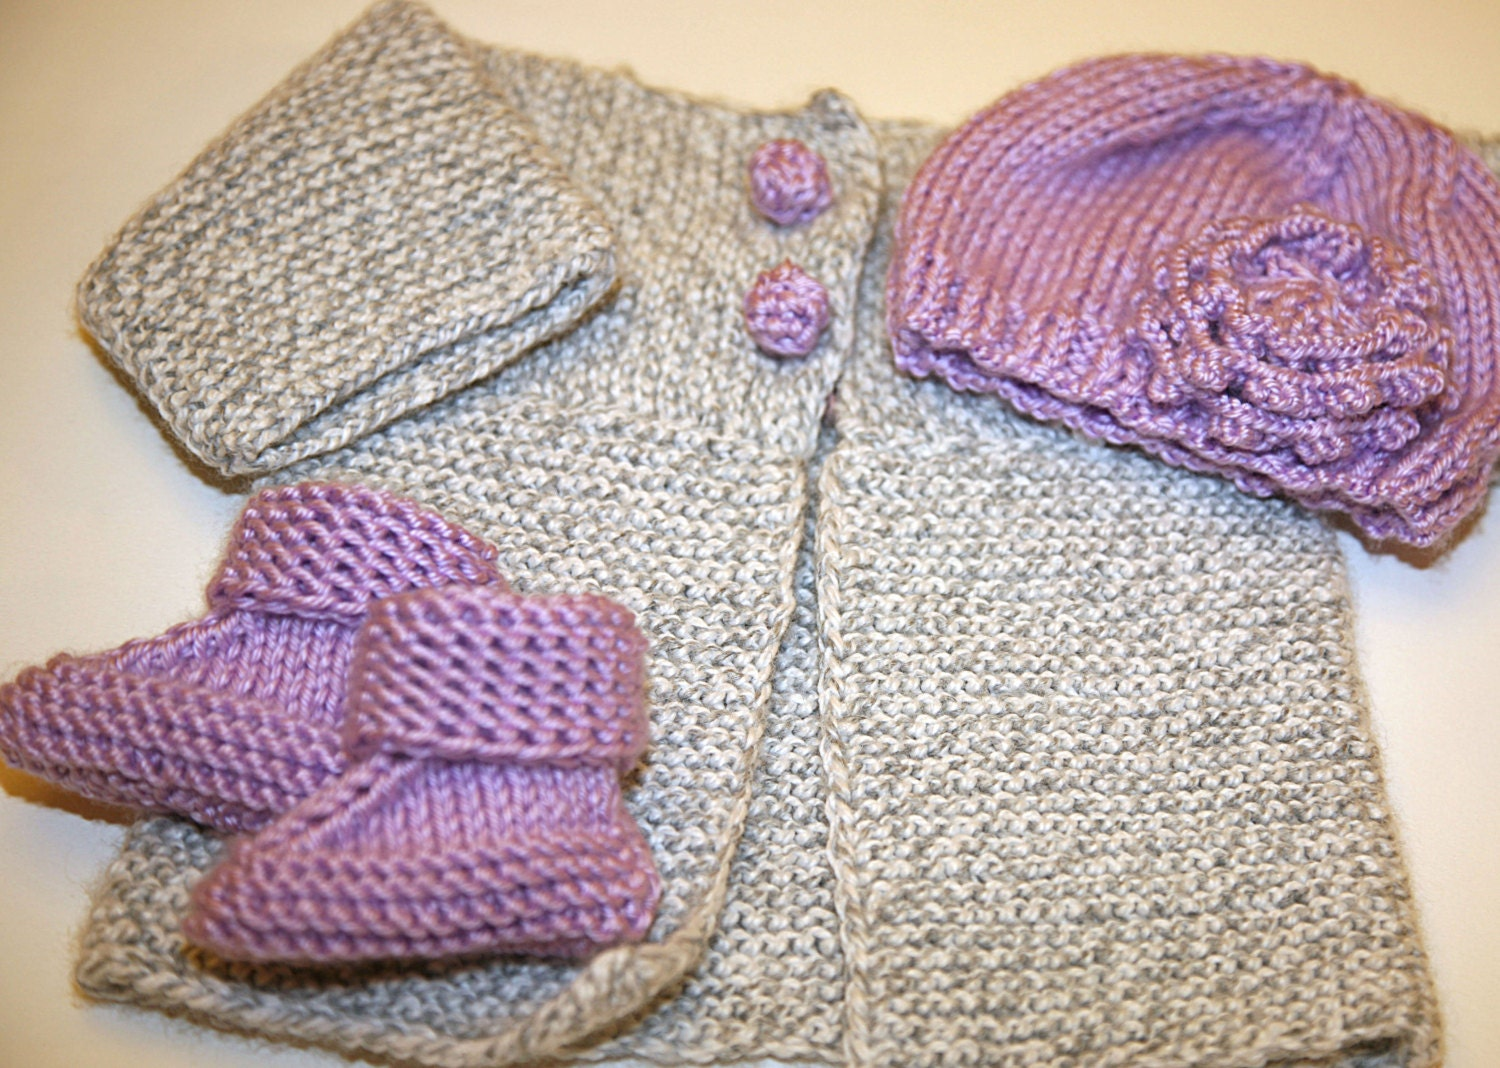 Knitting Pattern Cardigan For 18 Months : PATTERN knitting - baby boy or girl sweater / cardigan with soft crochet butt...